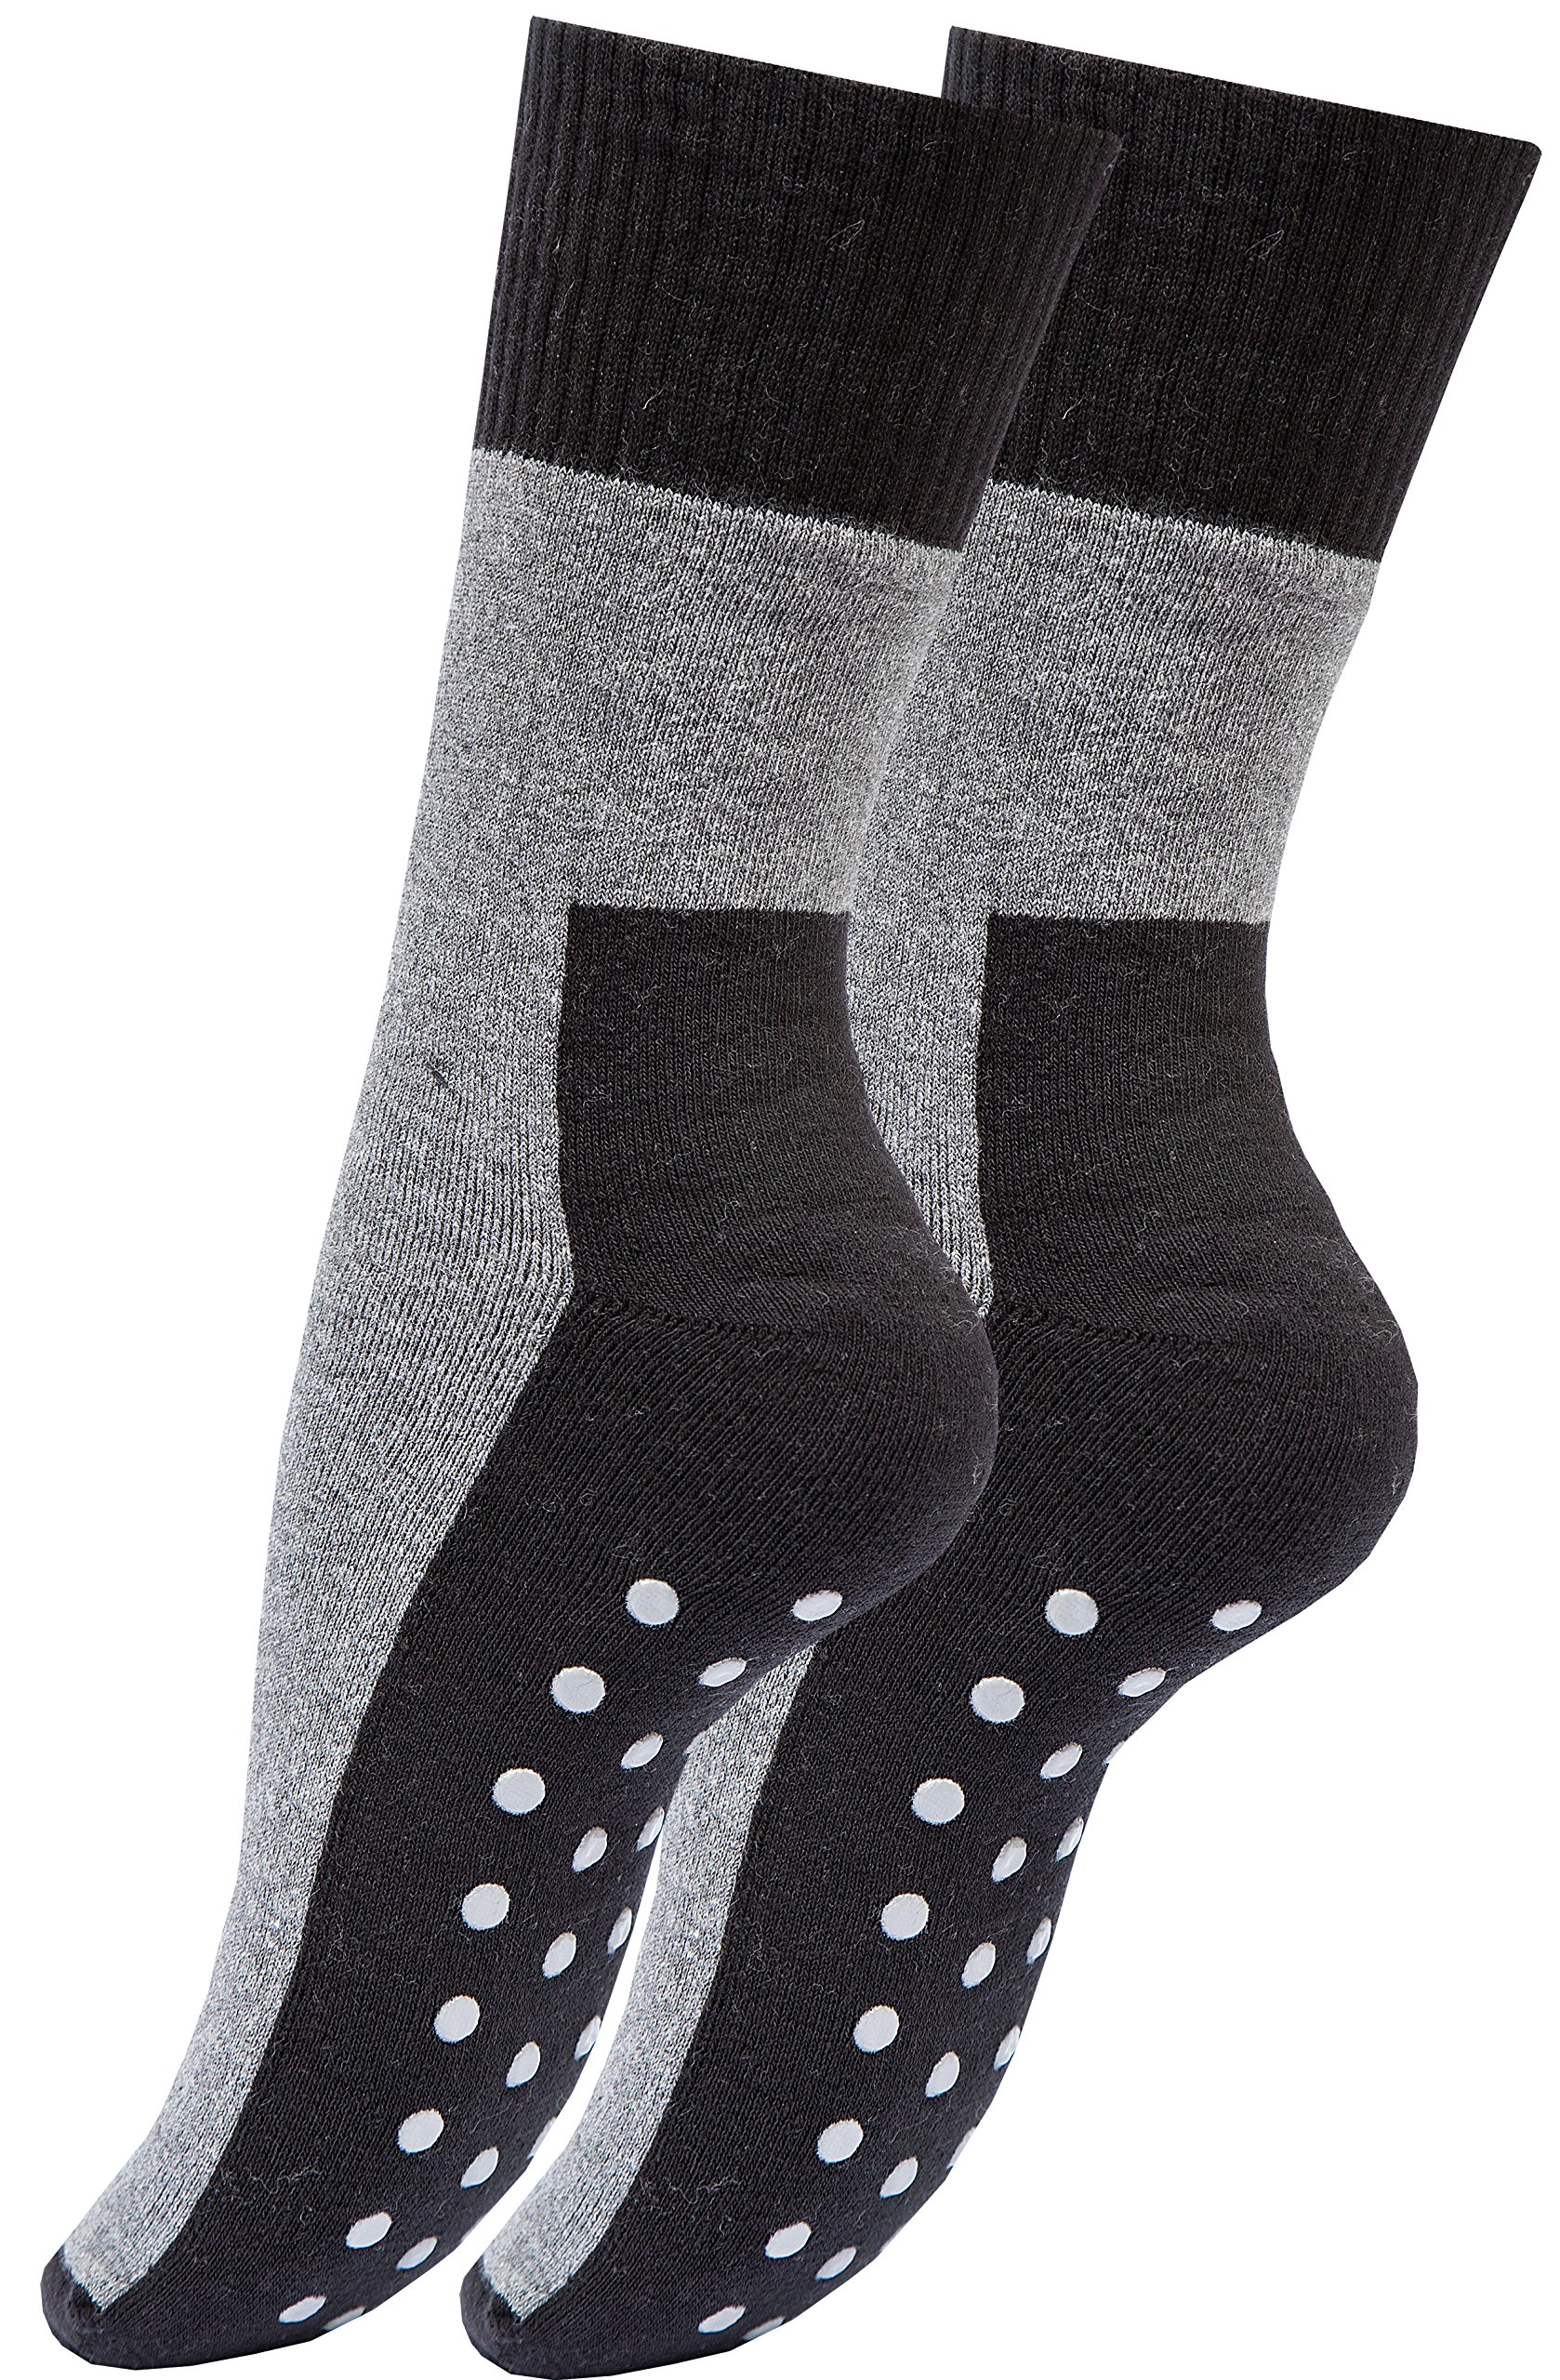 Vincent Creation® 4 pares ABS calcetines unisex – Con antideslizante suela product image